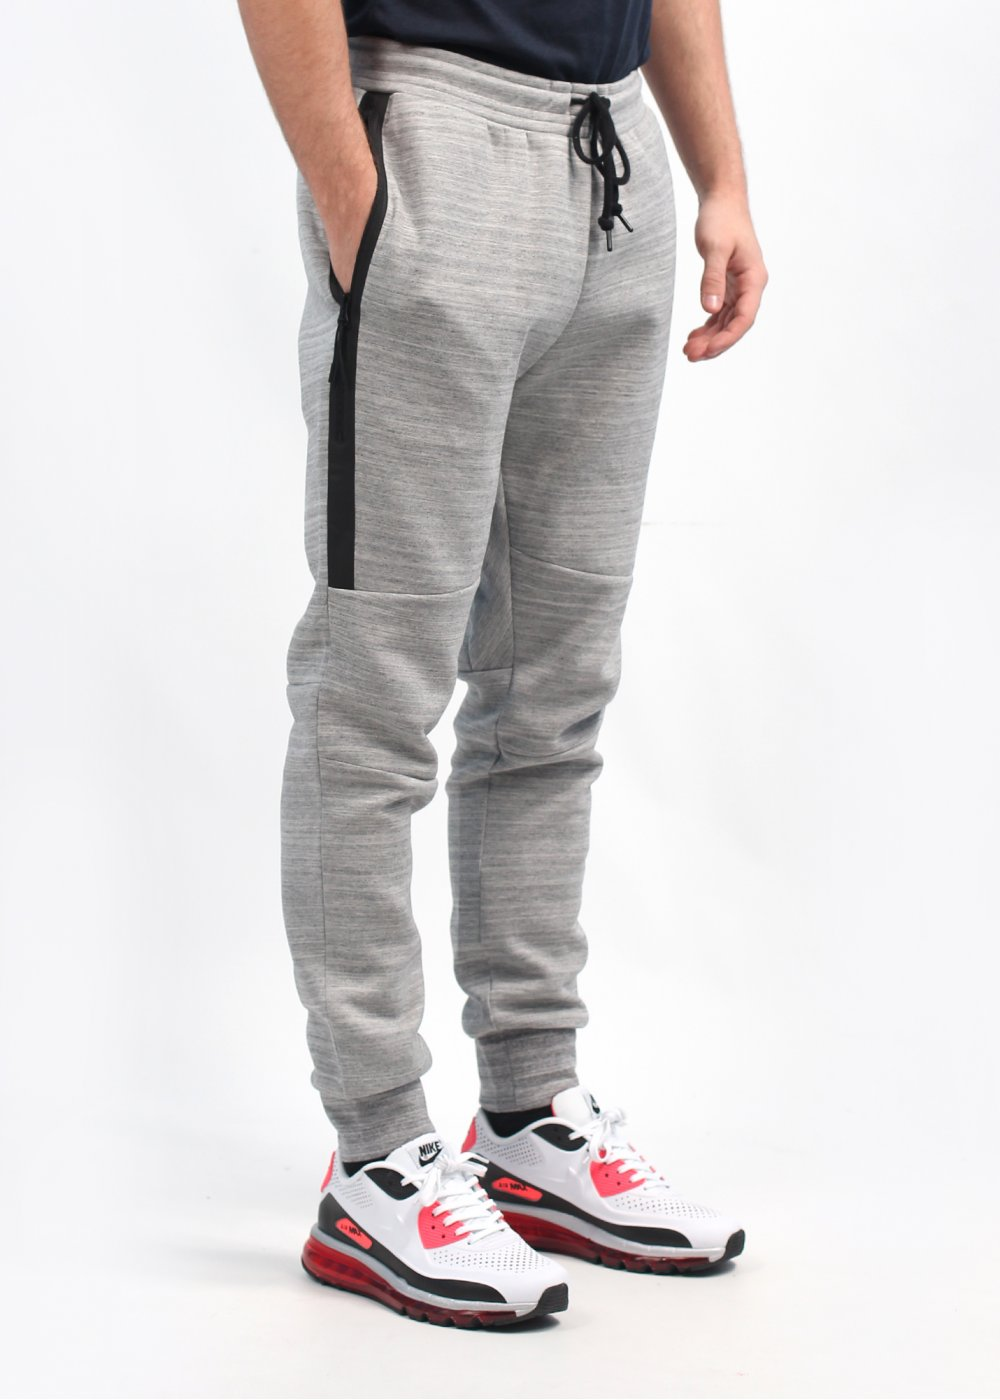 Beautiful Grey Nike Sweatpants For Women Shop Nike Pants Women On Wanelo